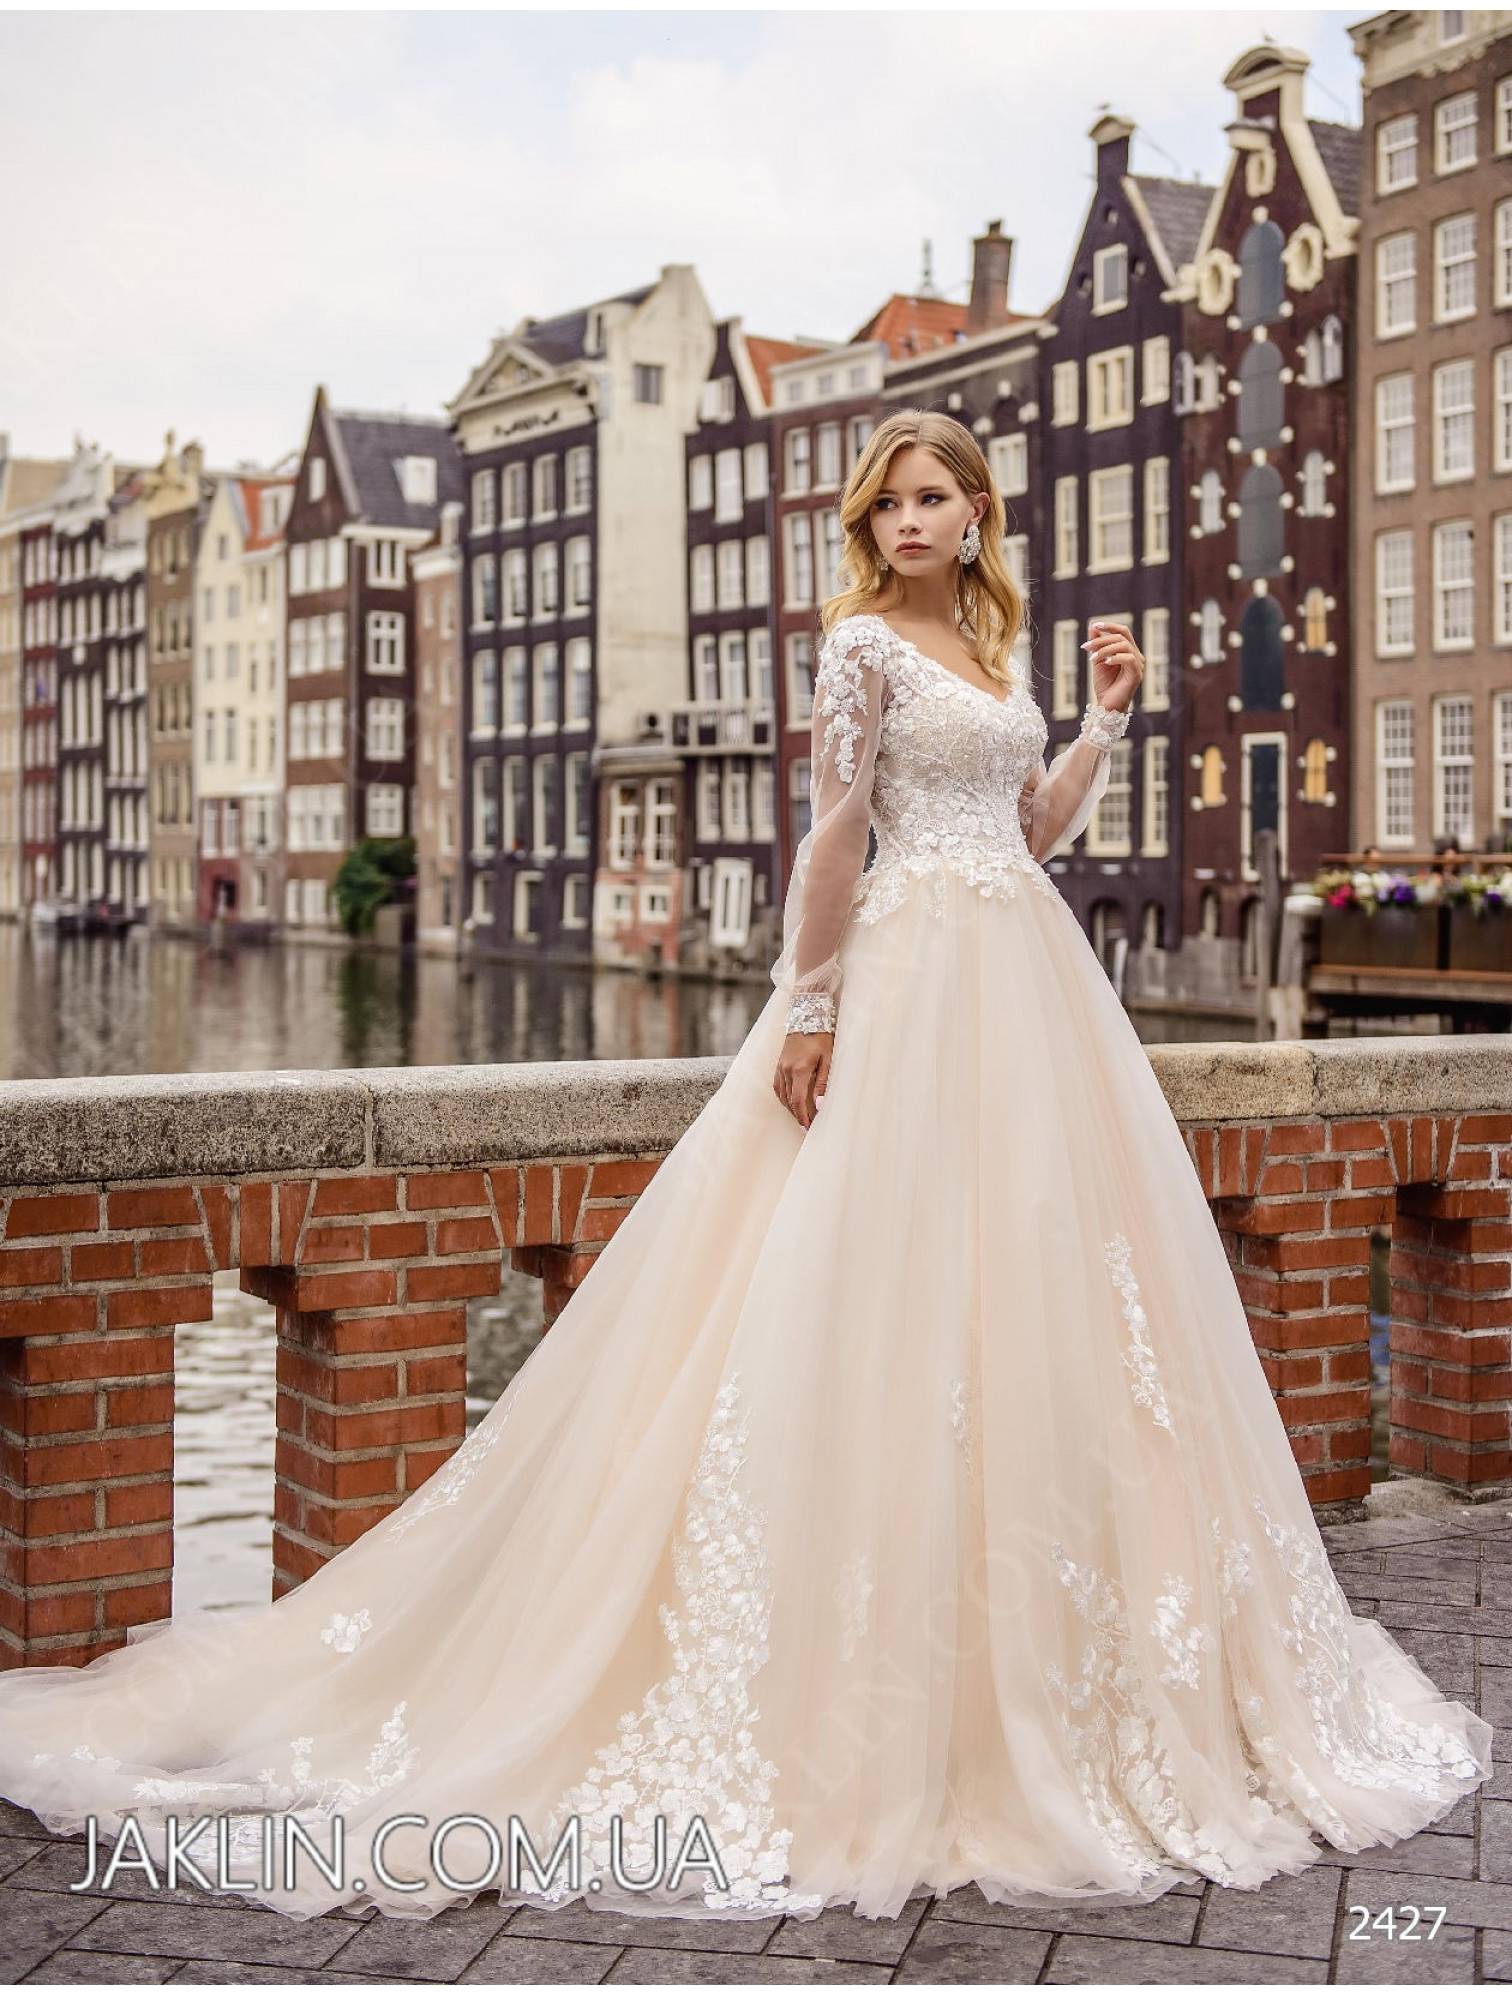 Wedding dress 2427